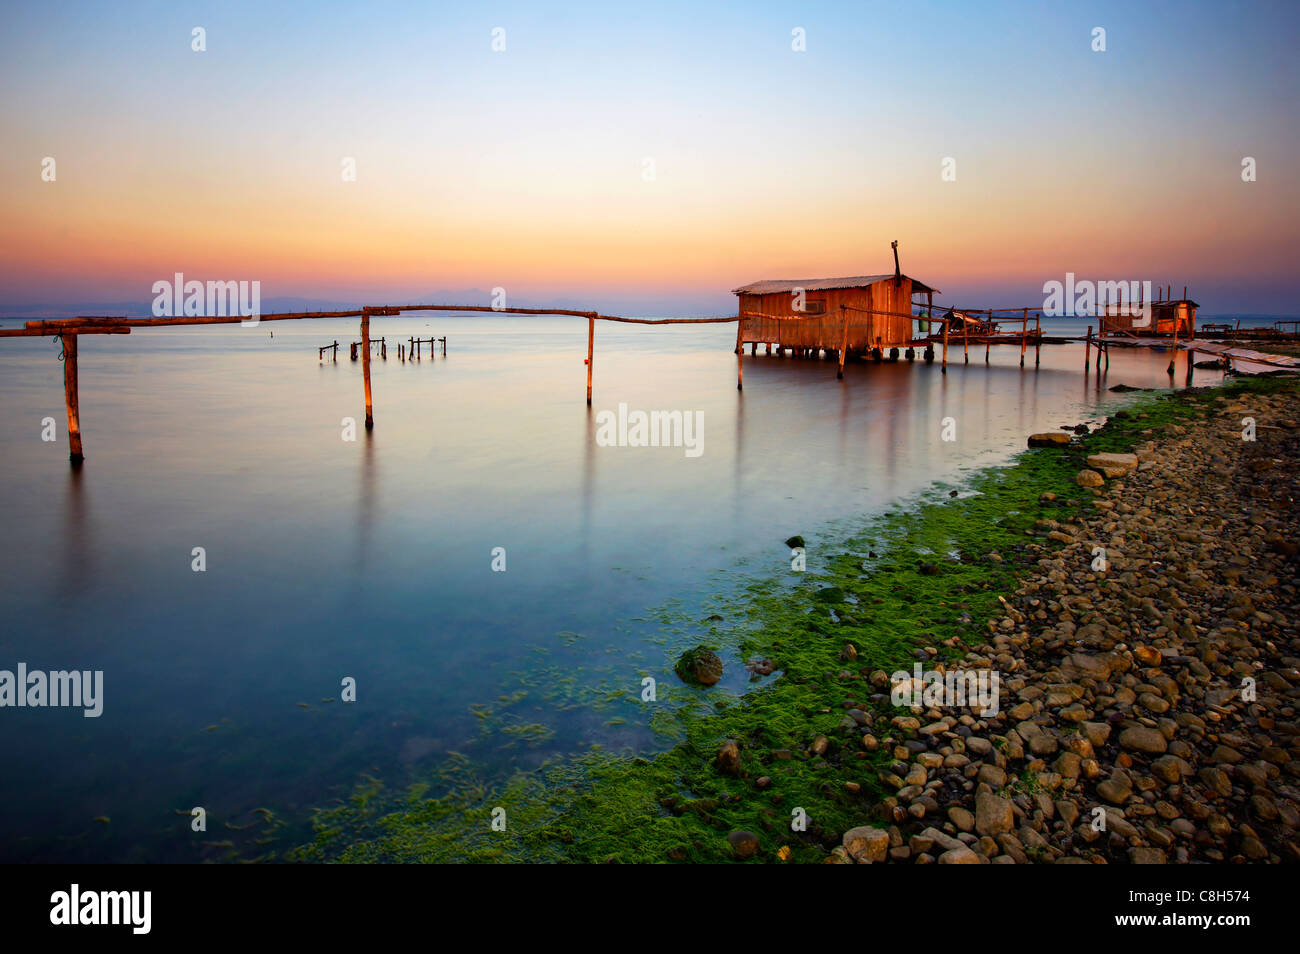 Stilt hut in the Delta of Axios (also know as 'Vardaris') river, Thessaloniki, Macedonia, Greece - Stock Image